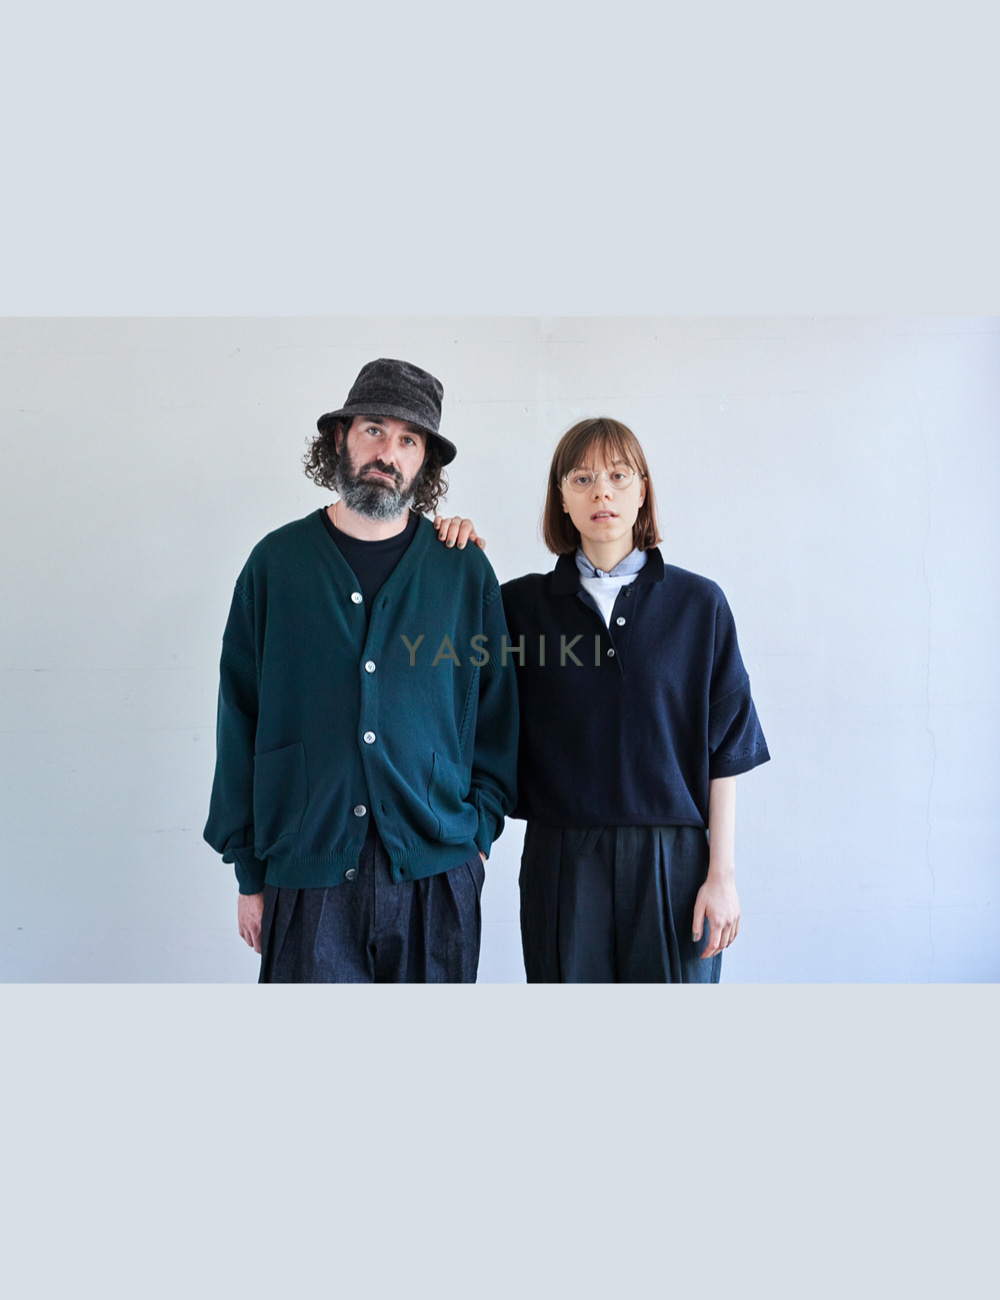 YASHIKI 2021 SPRING/SUMMER LOOKBOOK